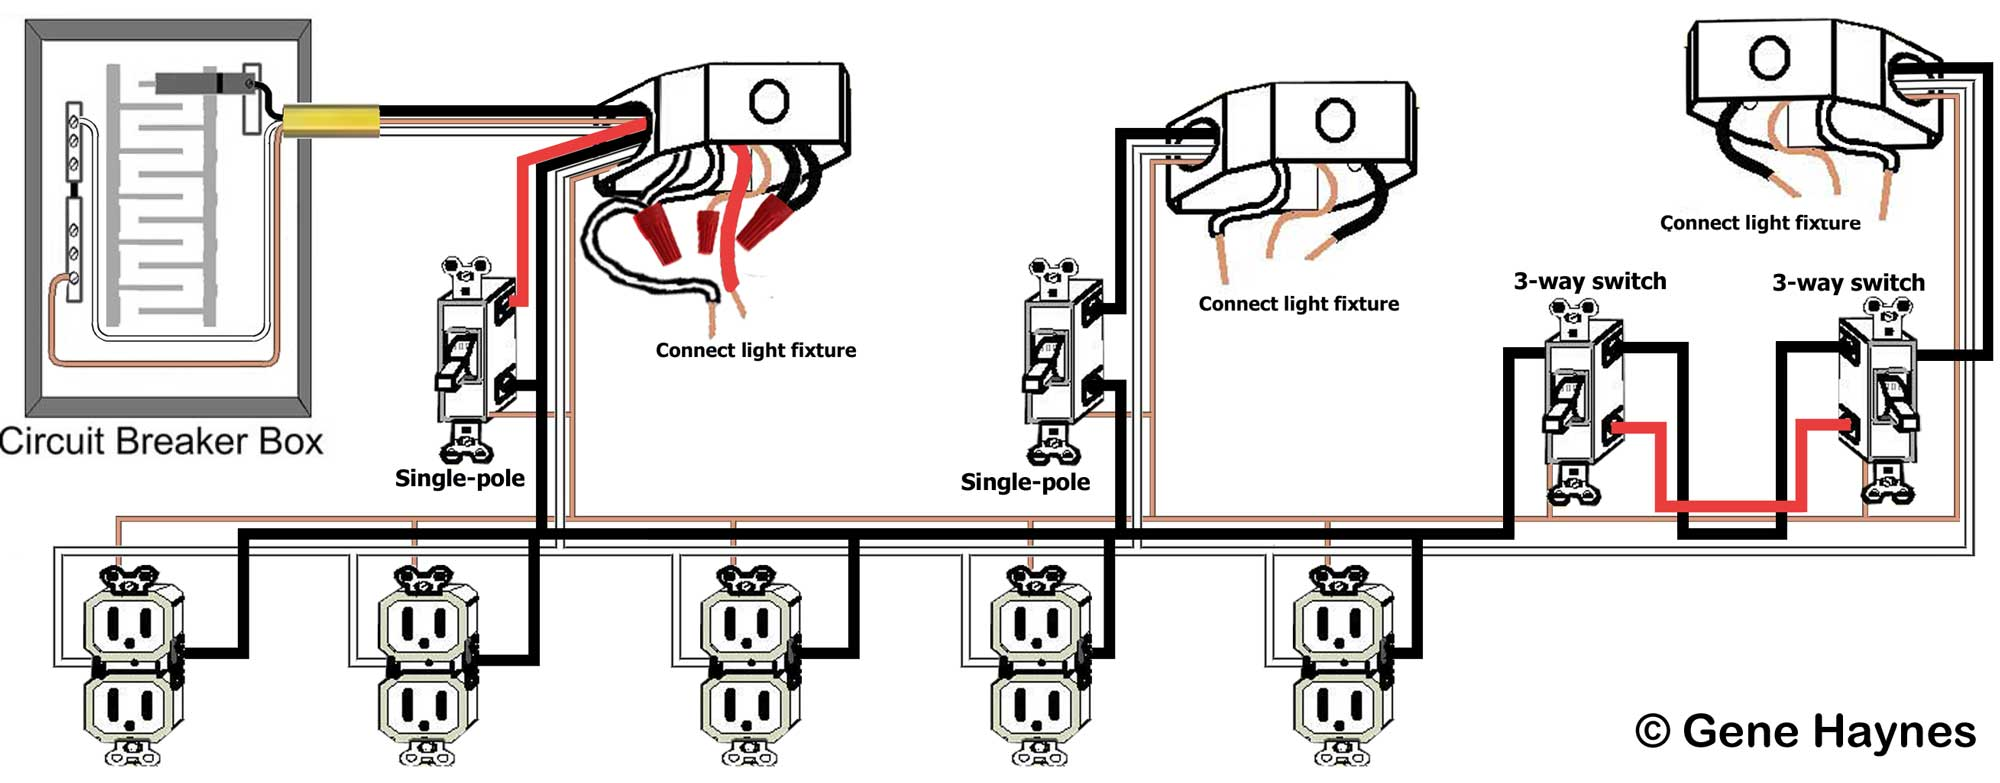 single pole switch wiring diagram power to continue wiring library rh 67 informaticaonlinetraining co 120 208 Volt Wiring Diagram 120 Volt Outlet Wiring Diagram